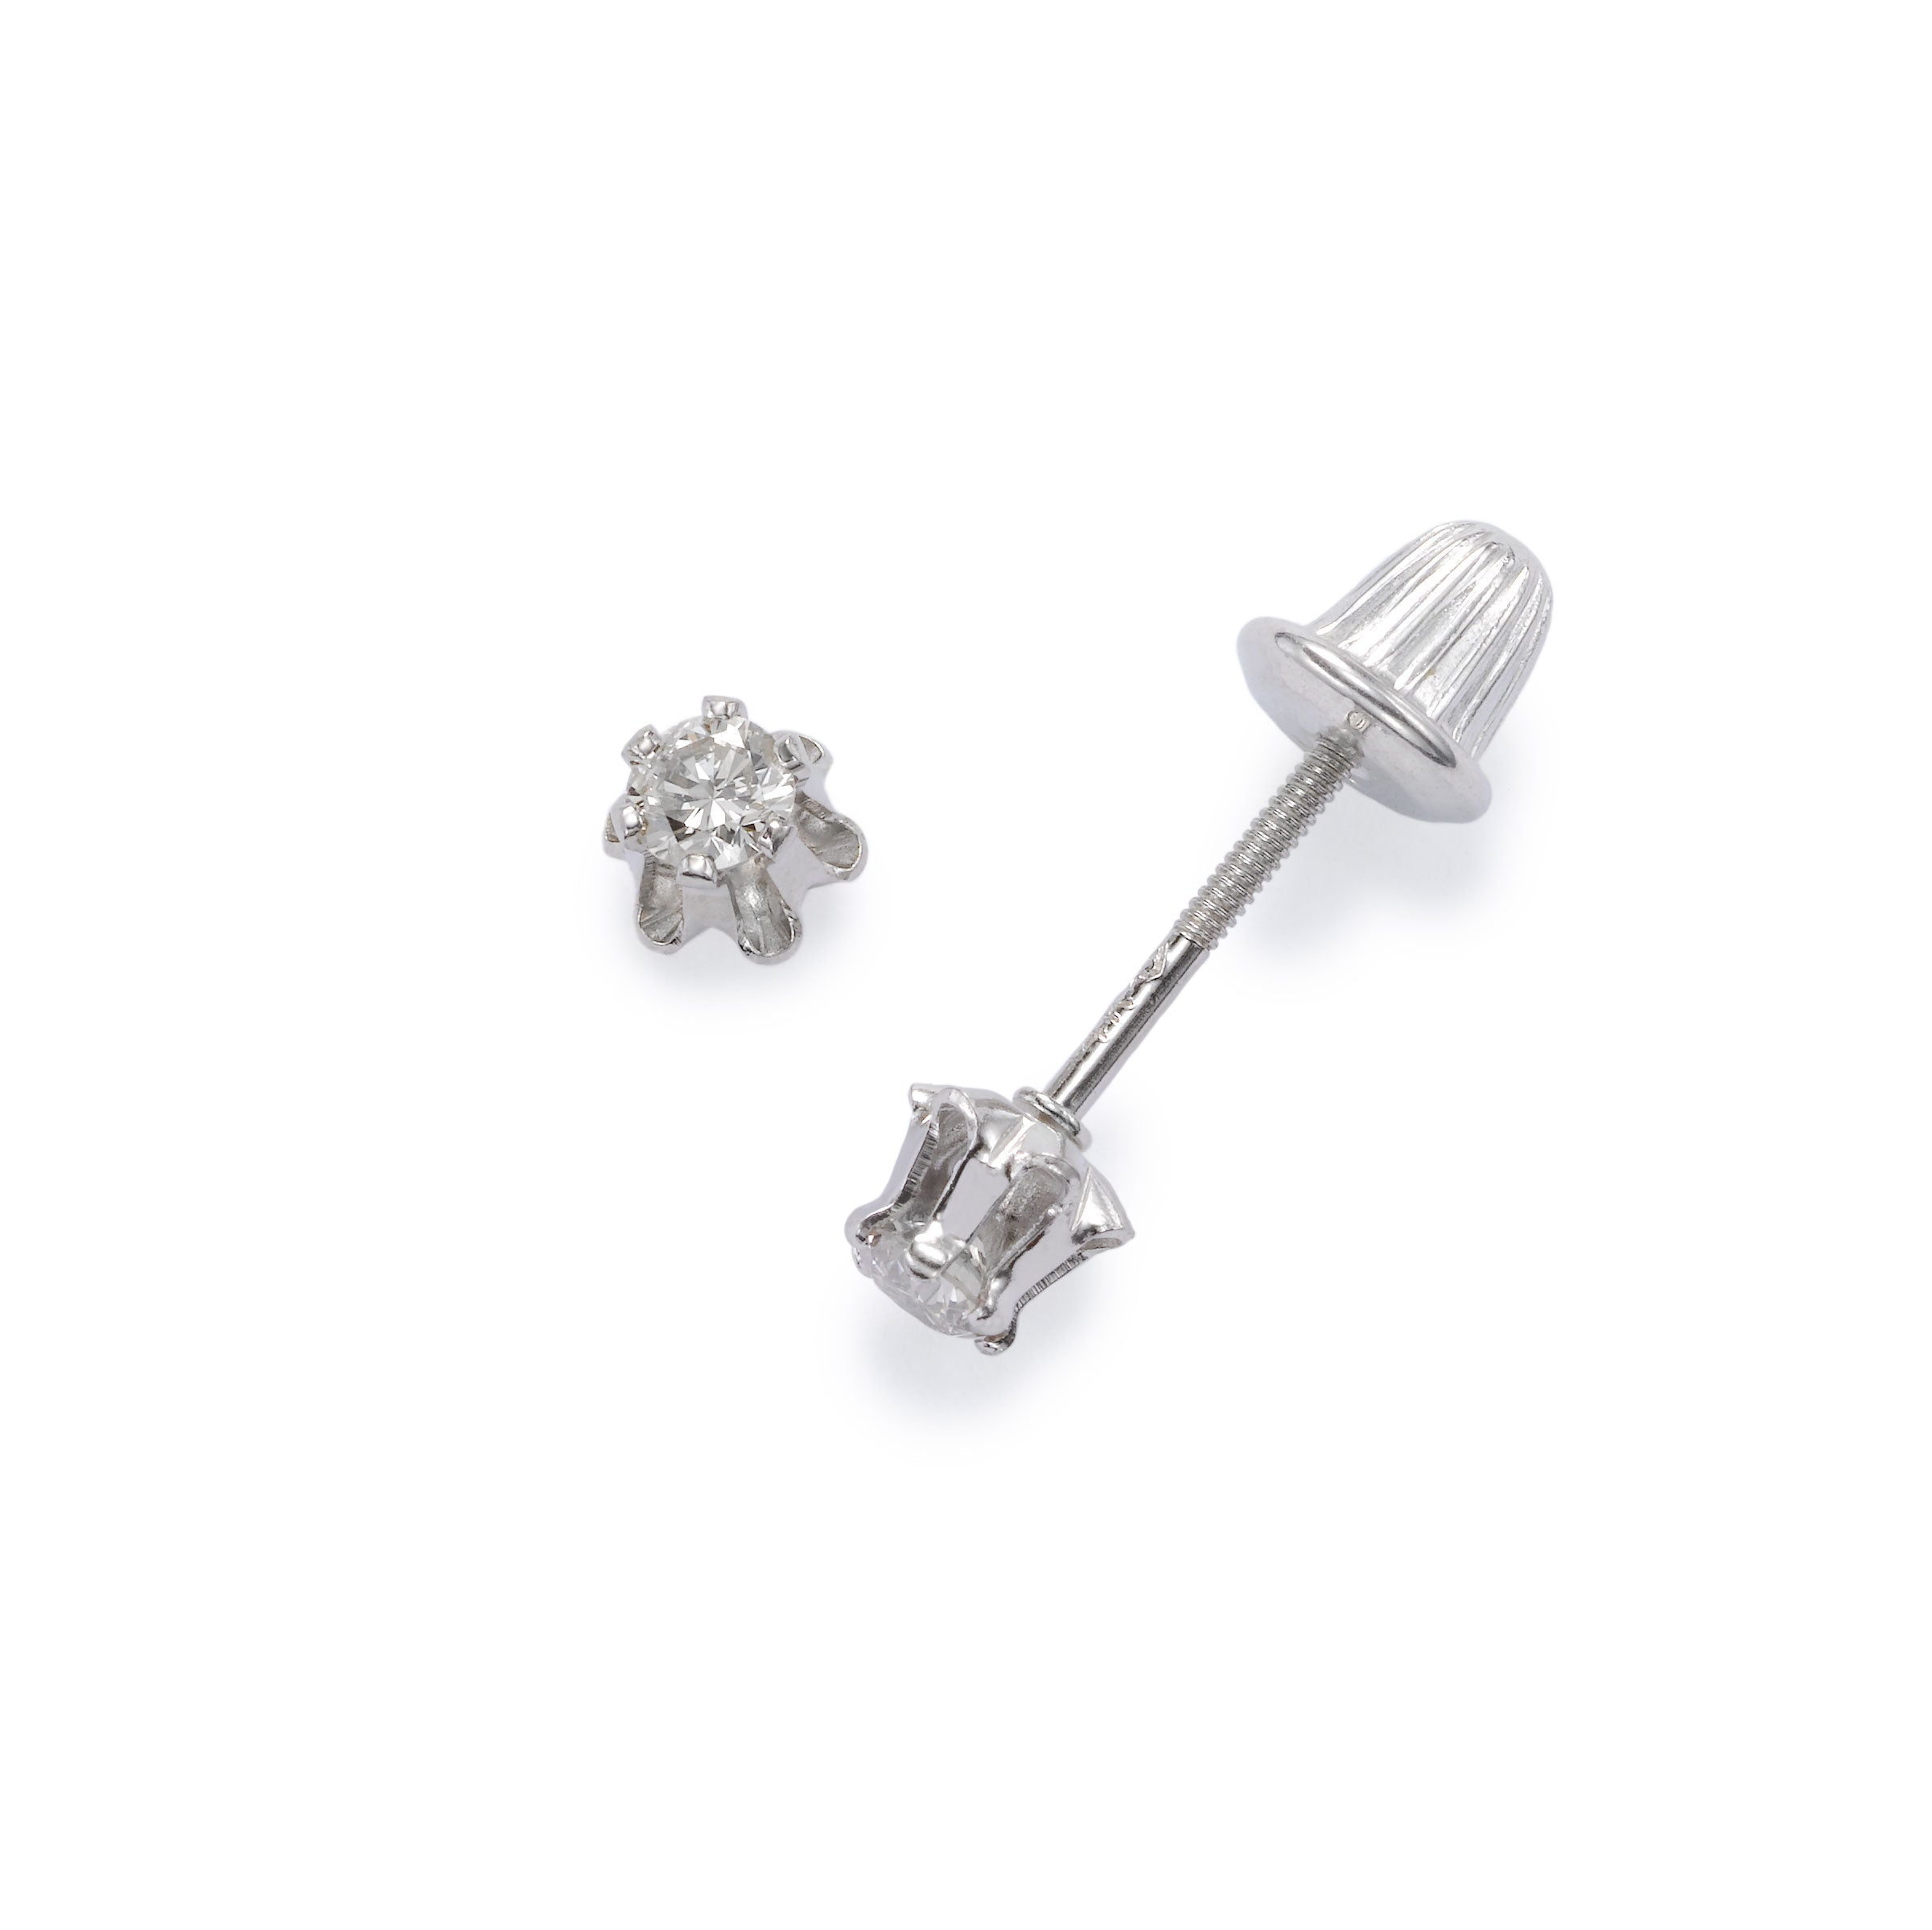 Child's Diamond Studs, Total Weight .14 Carat, 14K White Gold